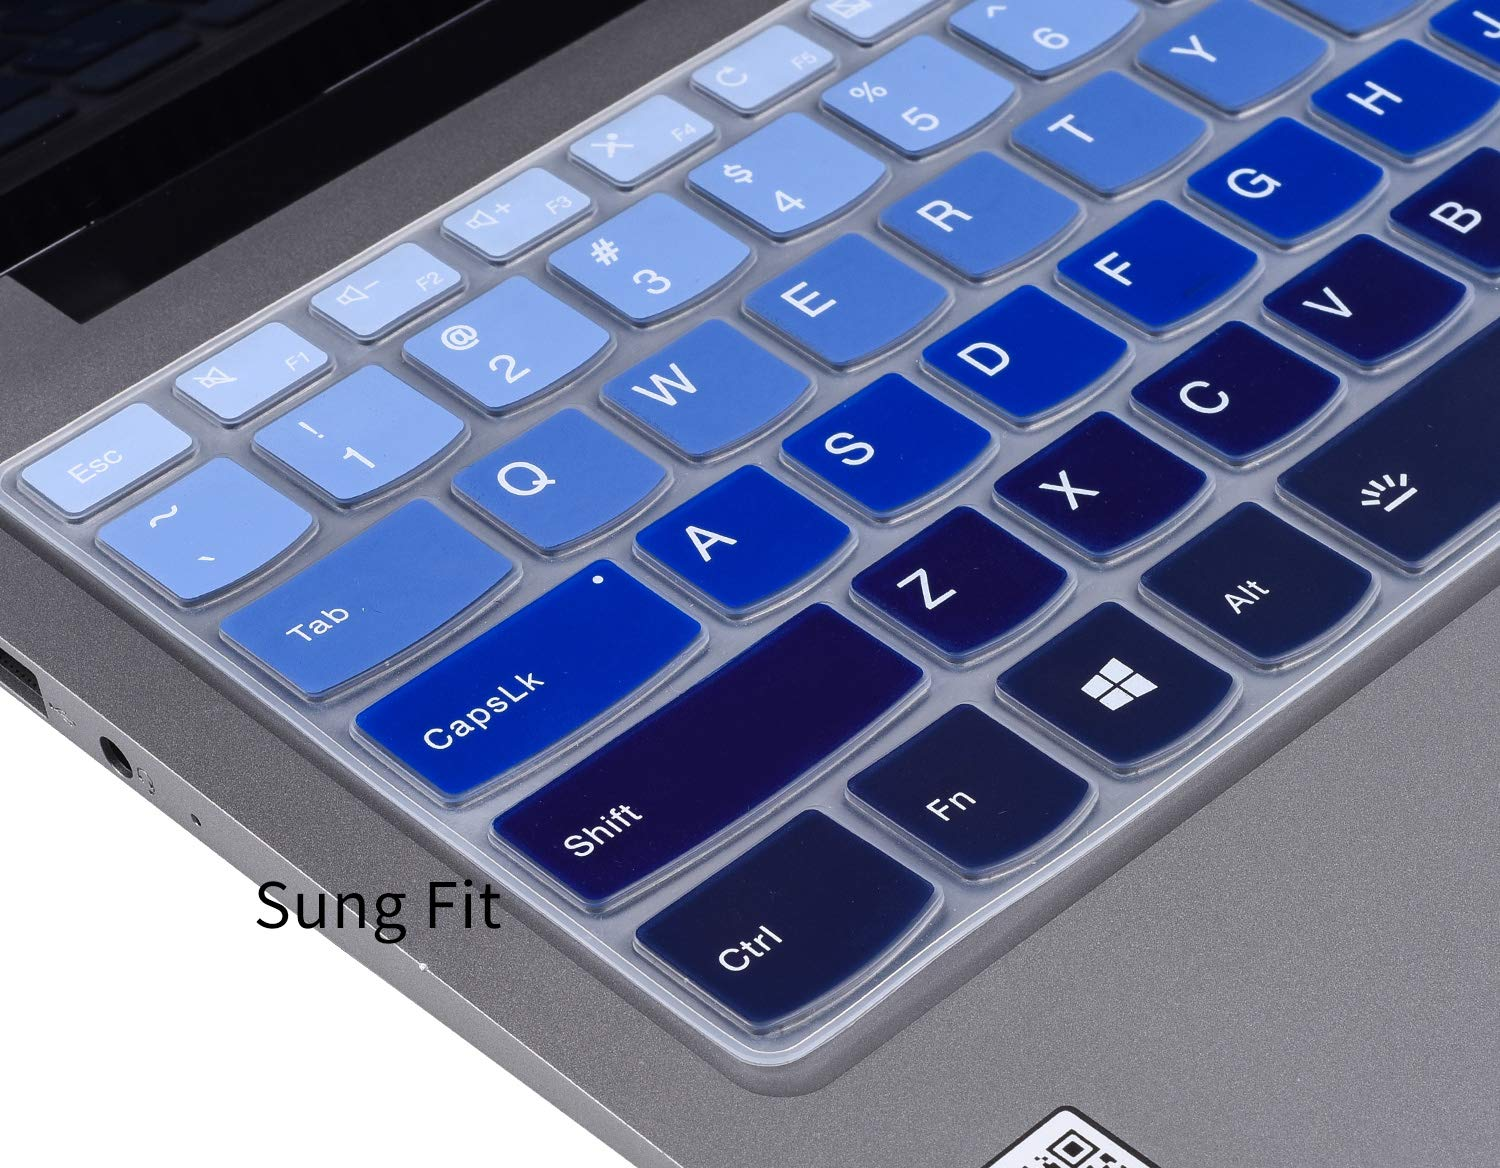 CaseBuy Keyboard Cover Compatible with Lenovo Yoga C940 C930 920 13.9 / Lenovo Flex 14 14 inch/Flex 15 15.6 / Yoga 730 720 13.3 / Yoga 730 15.6 / Yoga ...